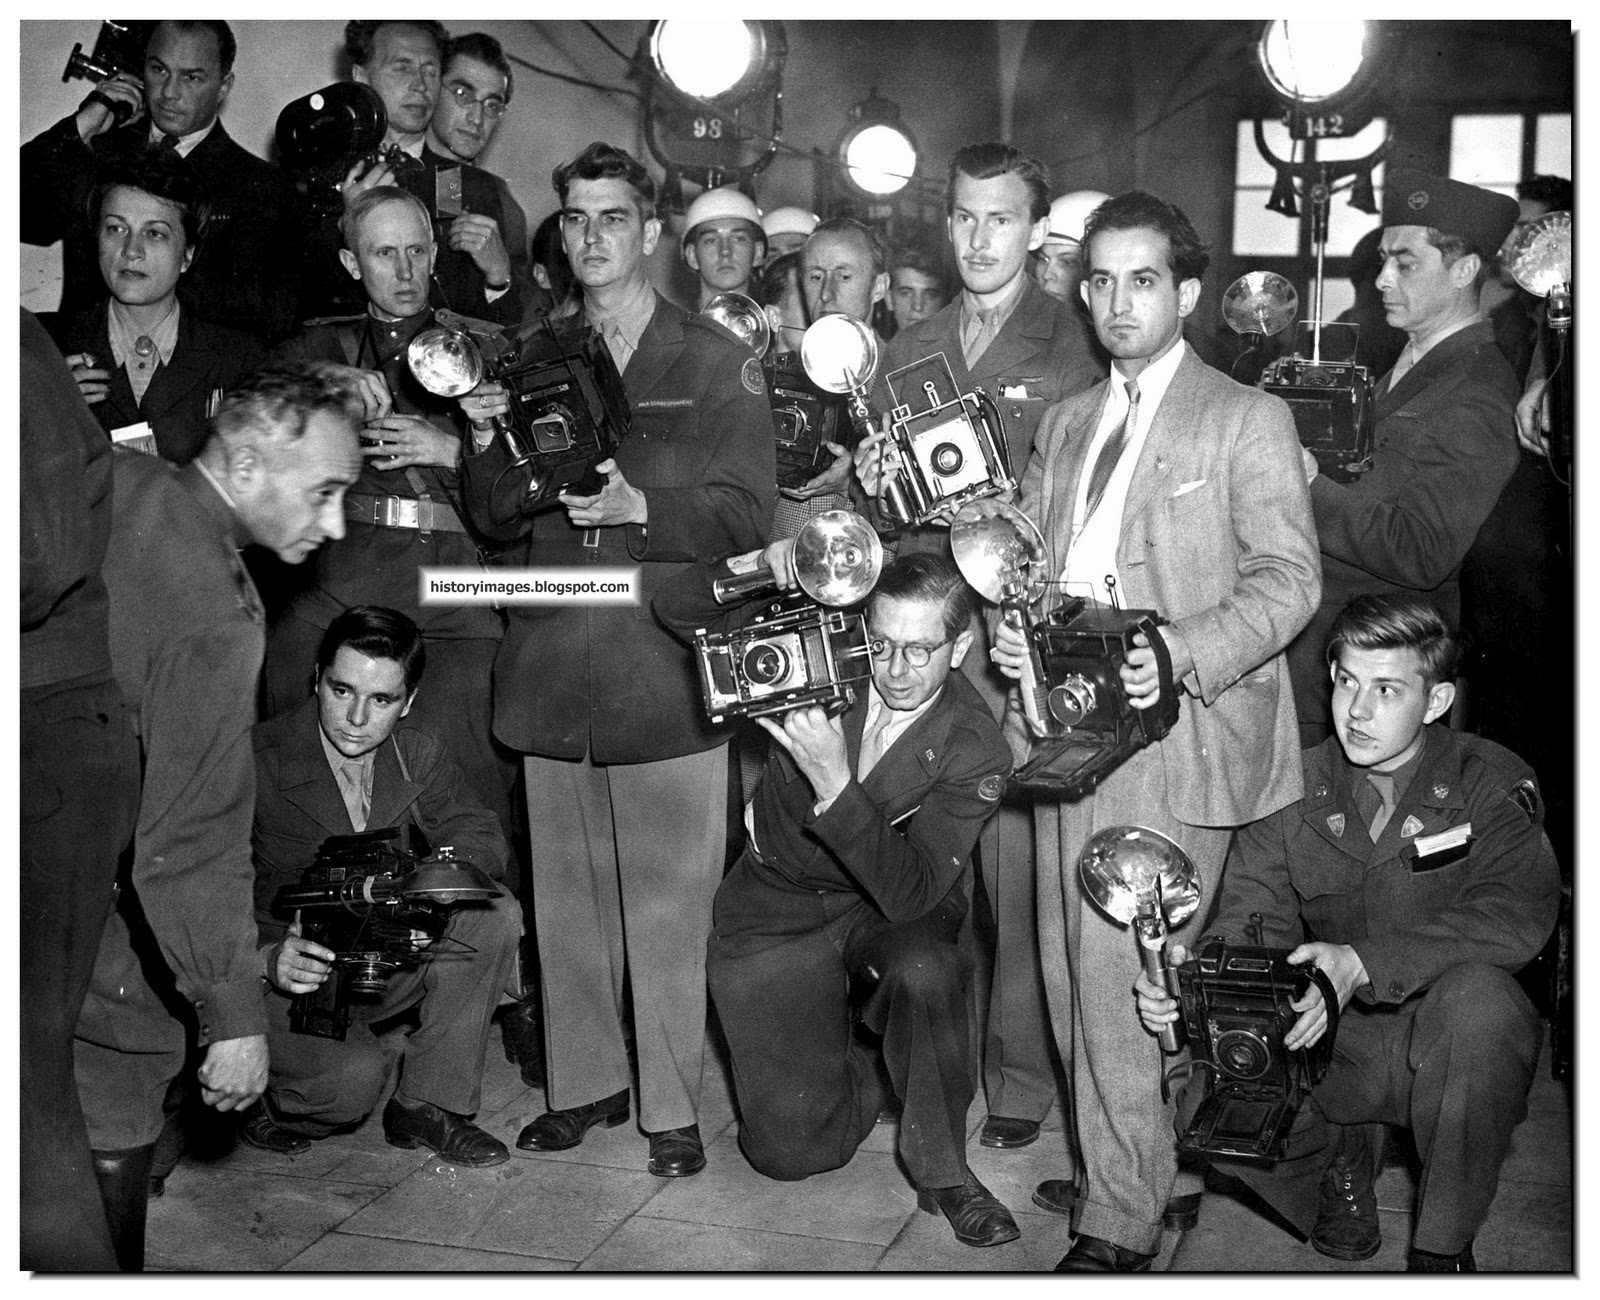 history in images pictures of war history ww nuremberg photographers covering the nuremberg trials 1946 they were not allowed inside the courtroom while the sentences were out